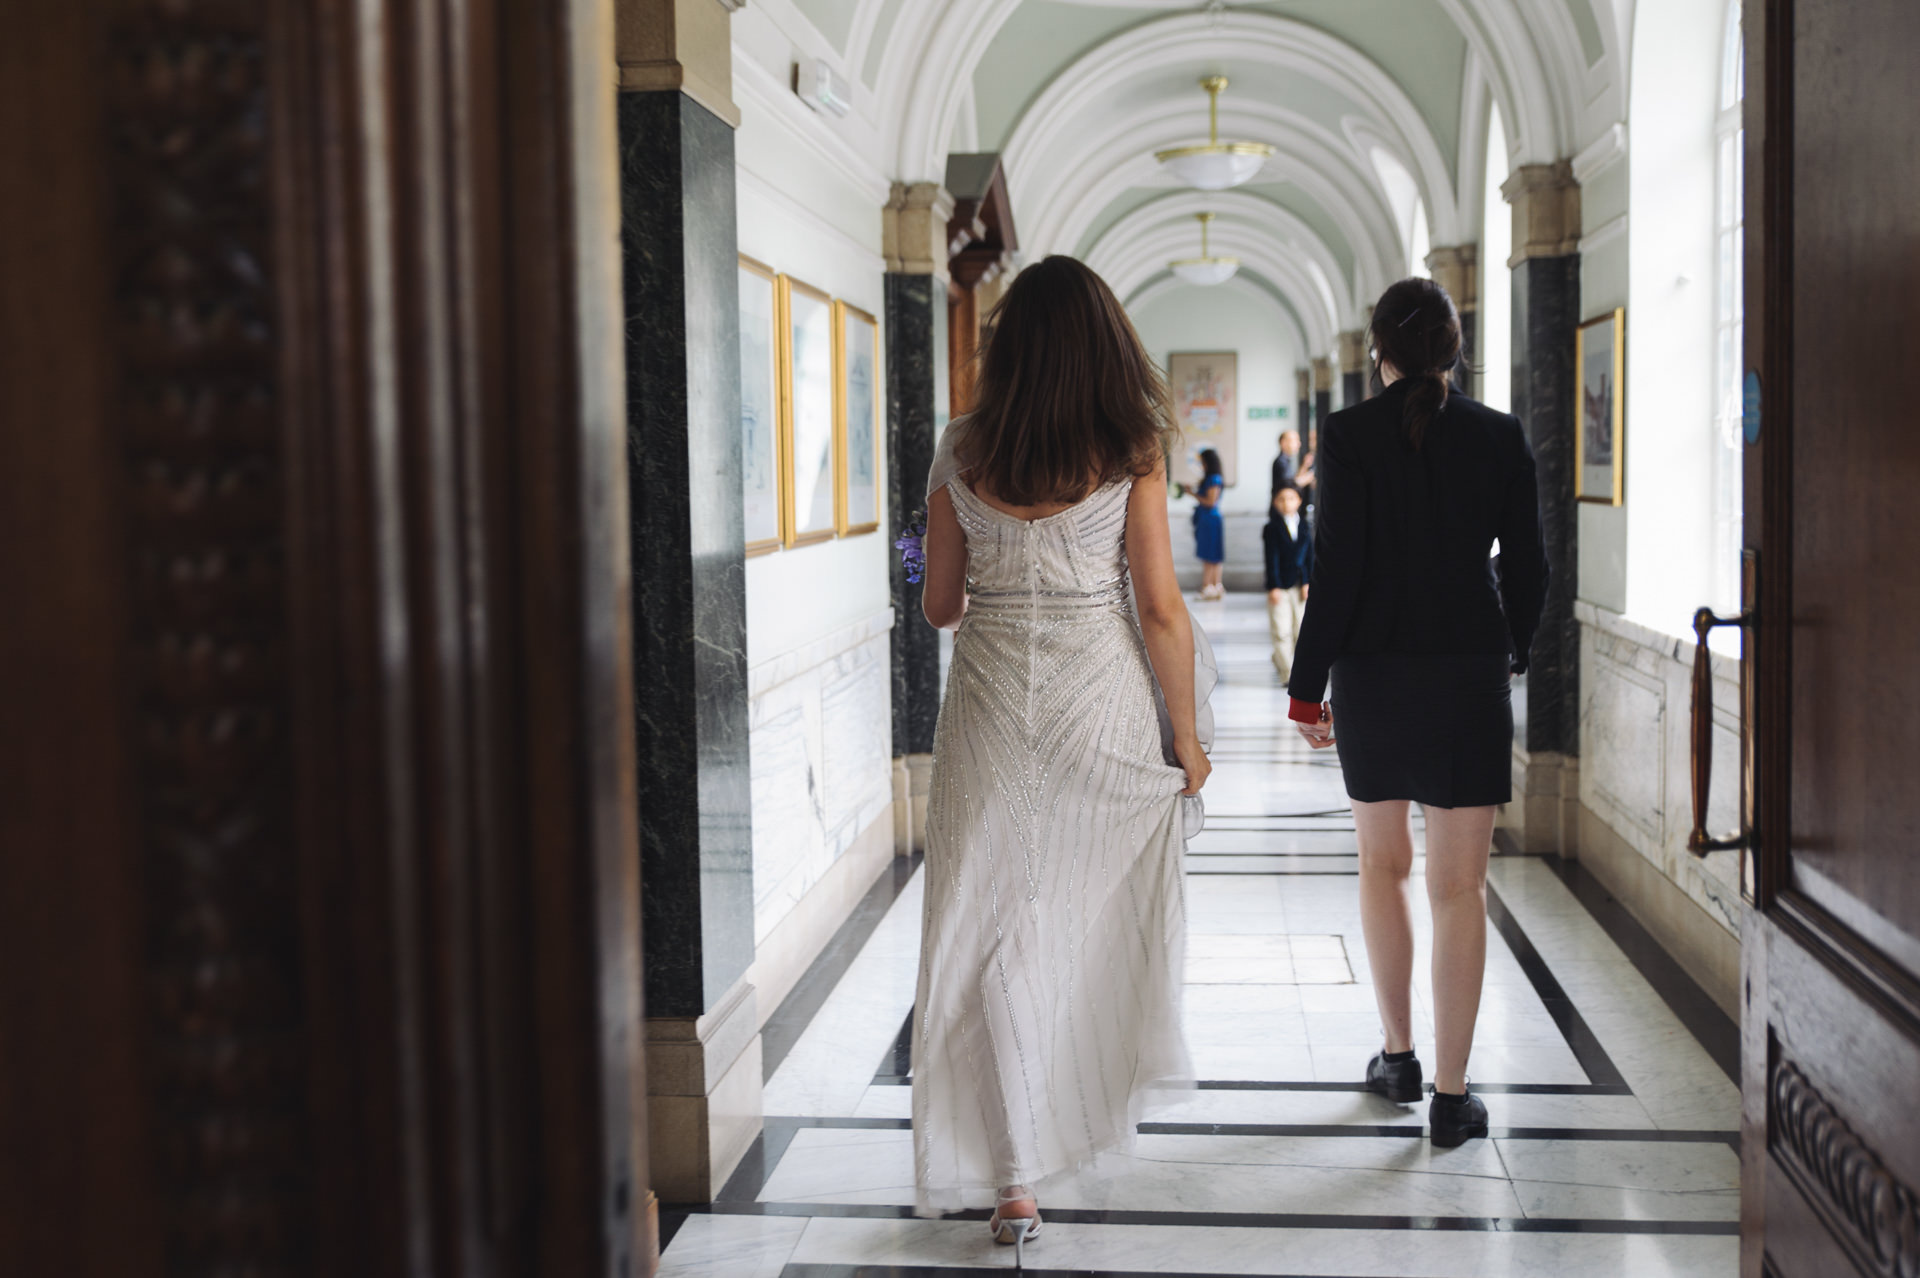 islington town hall wedding bride walks dawn the corridor